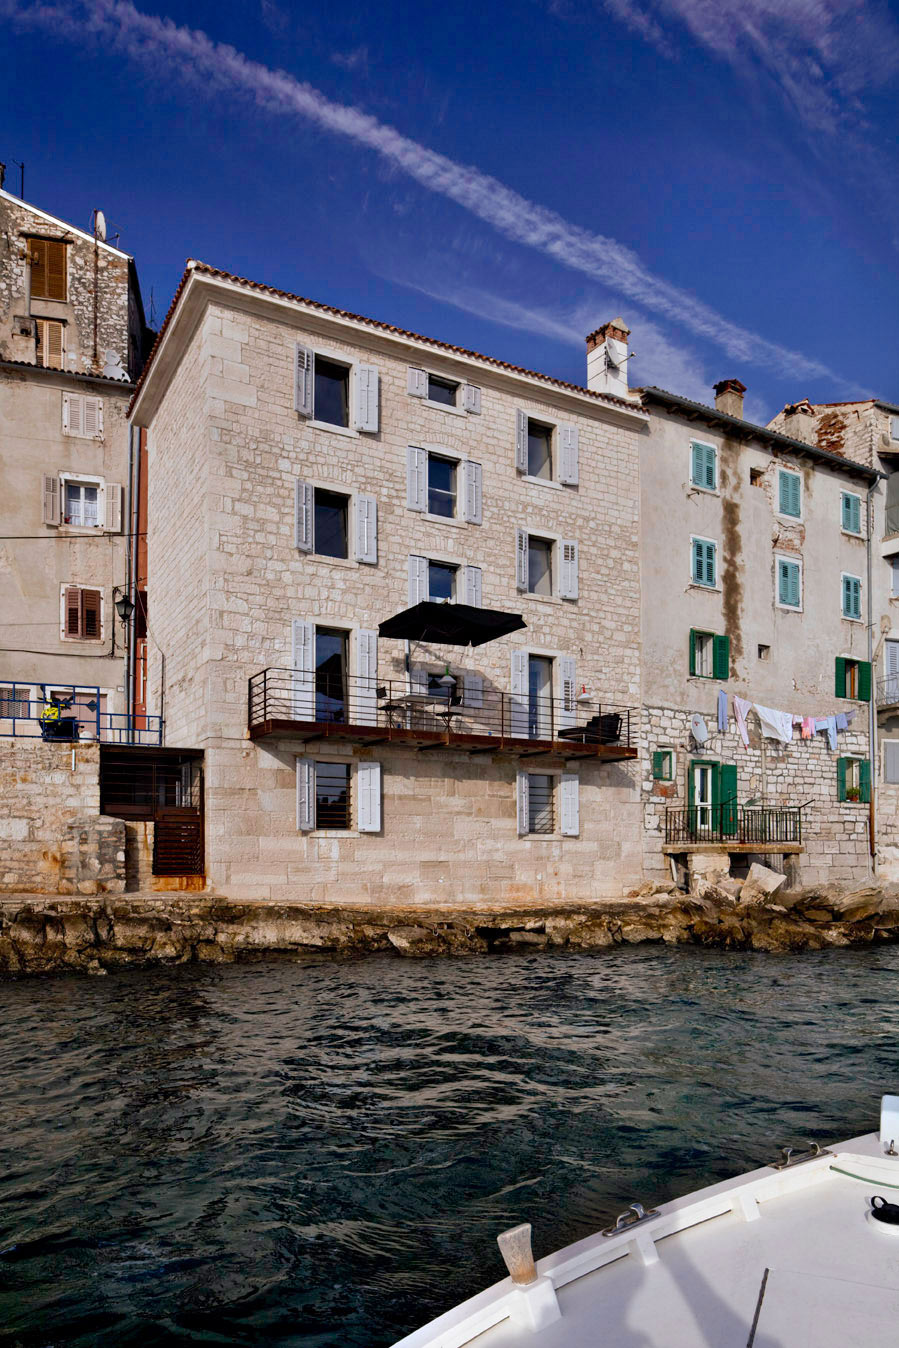 View from the Water, Renovation of an 18th Century Building in Rovinj, Croatia